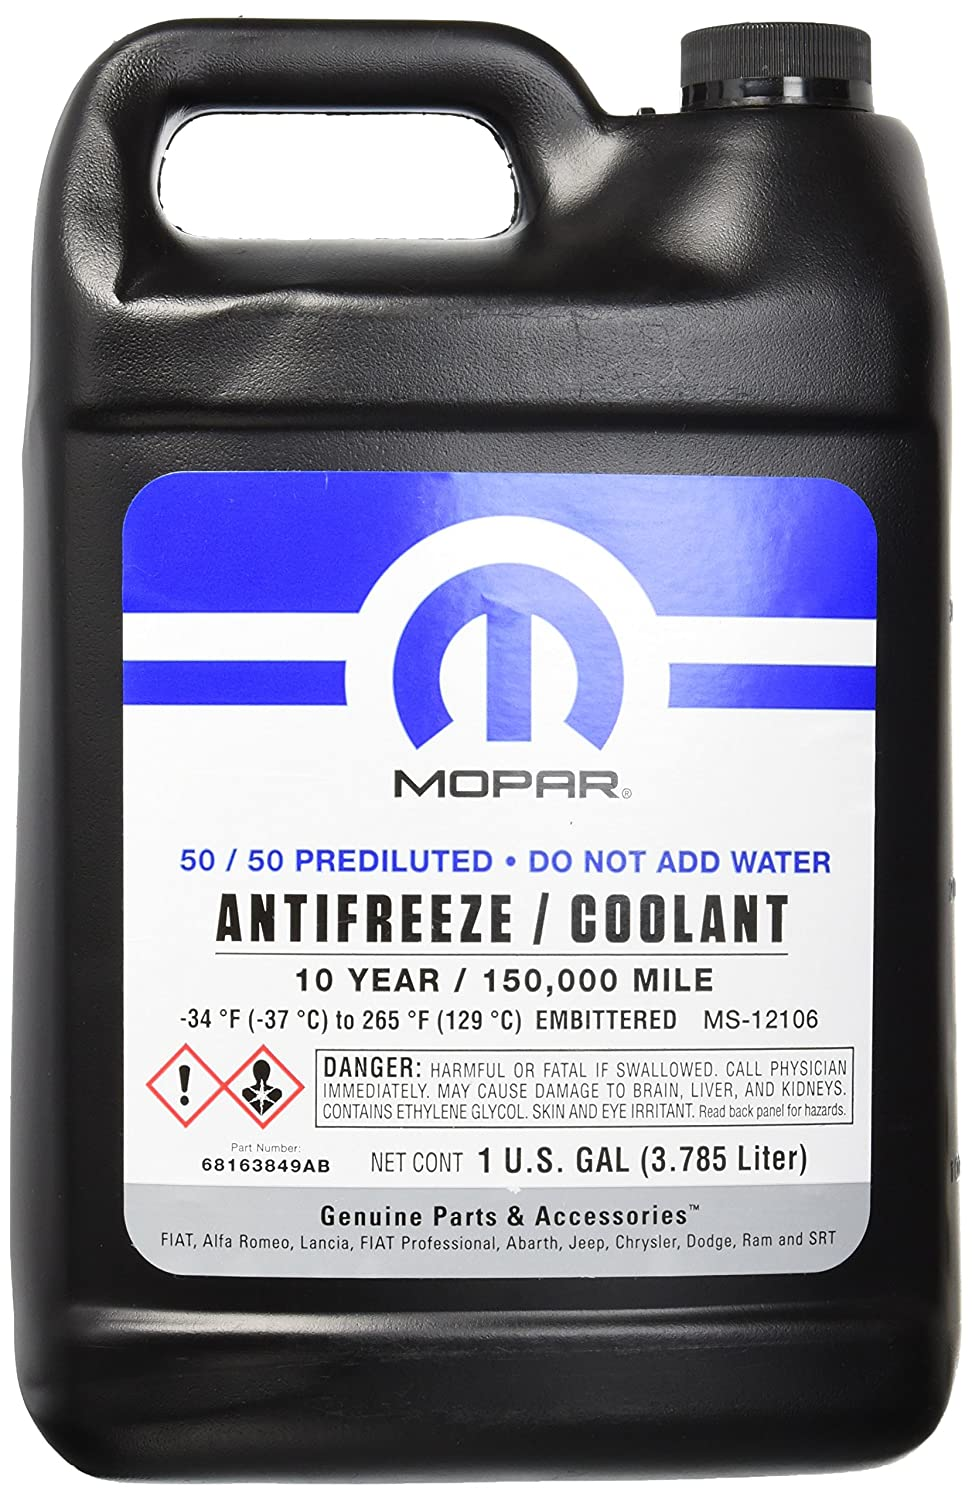 Amazon.com: Mopar 10 Year/150,000 Mile Coolant 50/50 Premixed: Automotive